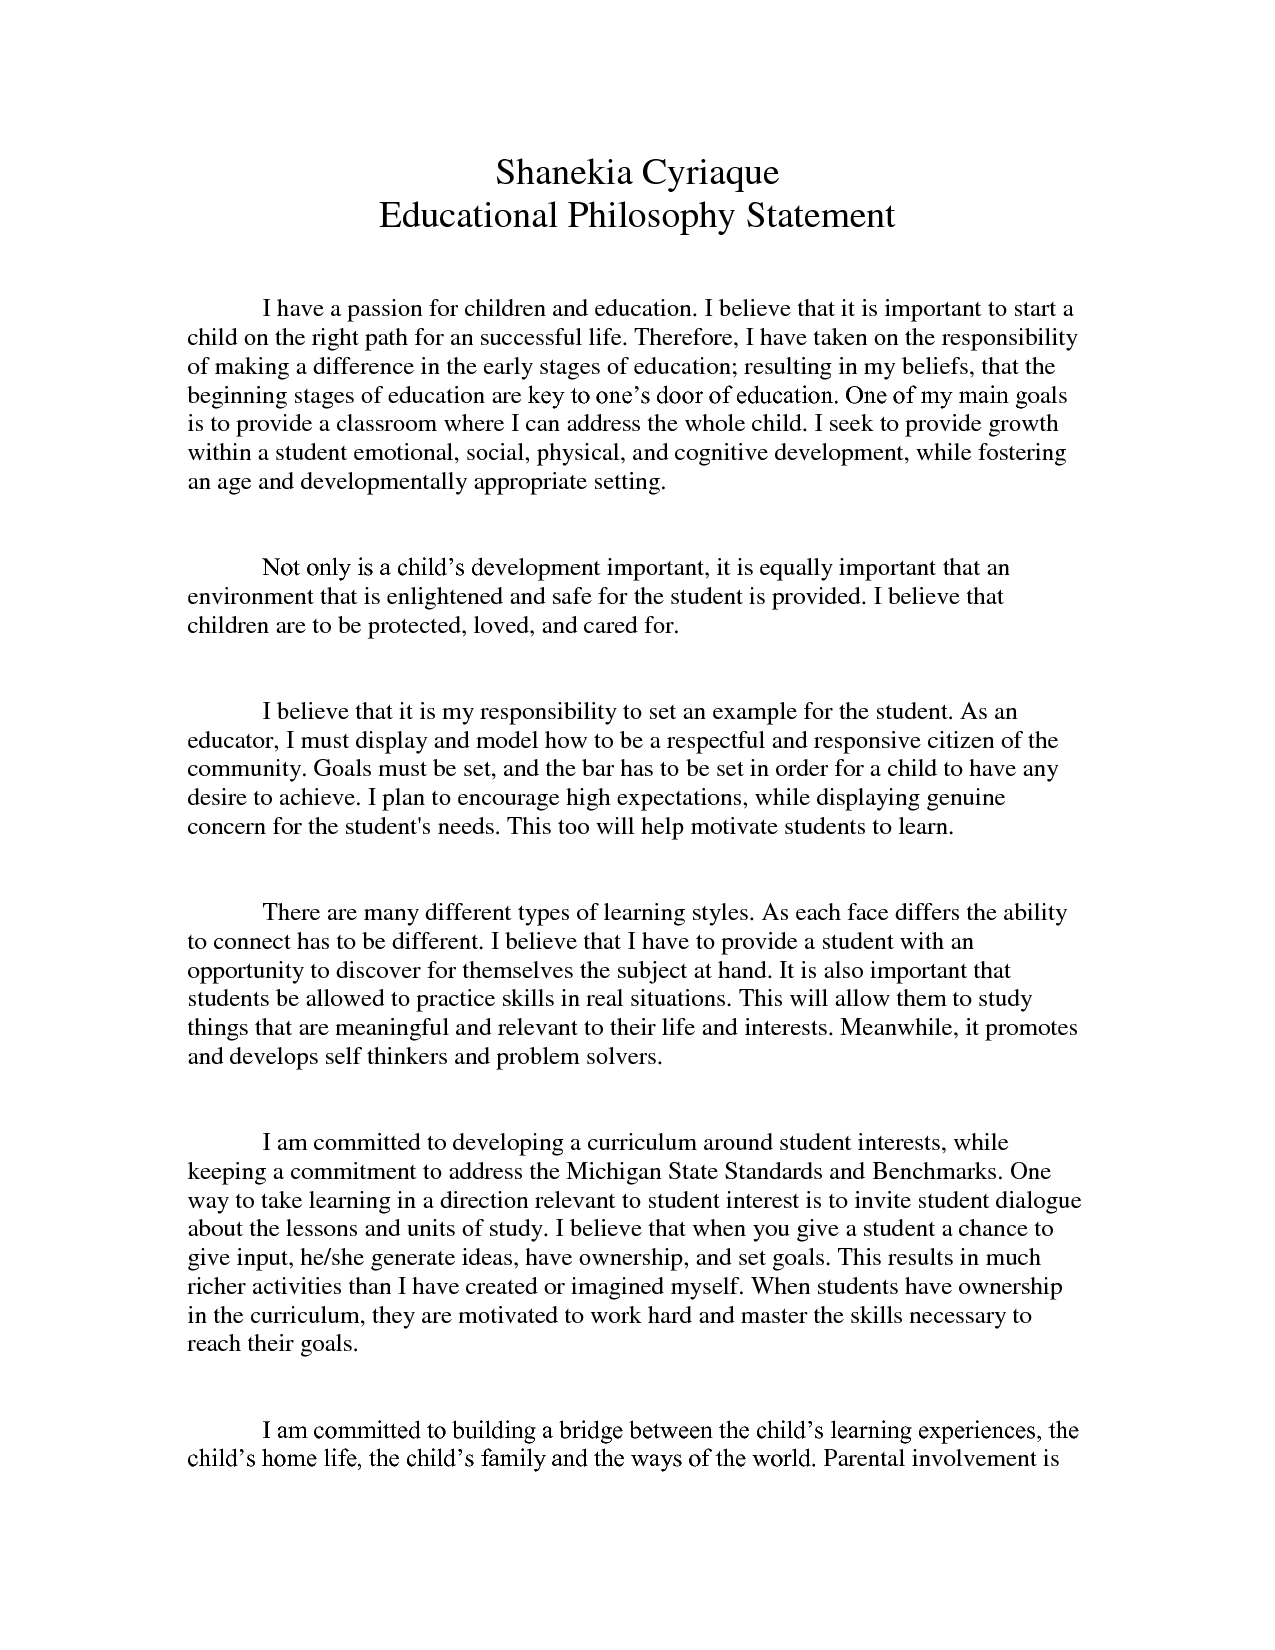 Educational philosophy statement samples cda pinterest for Cda portfolio template